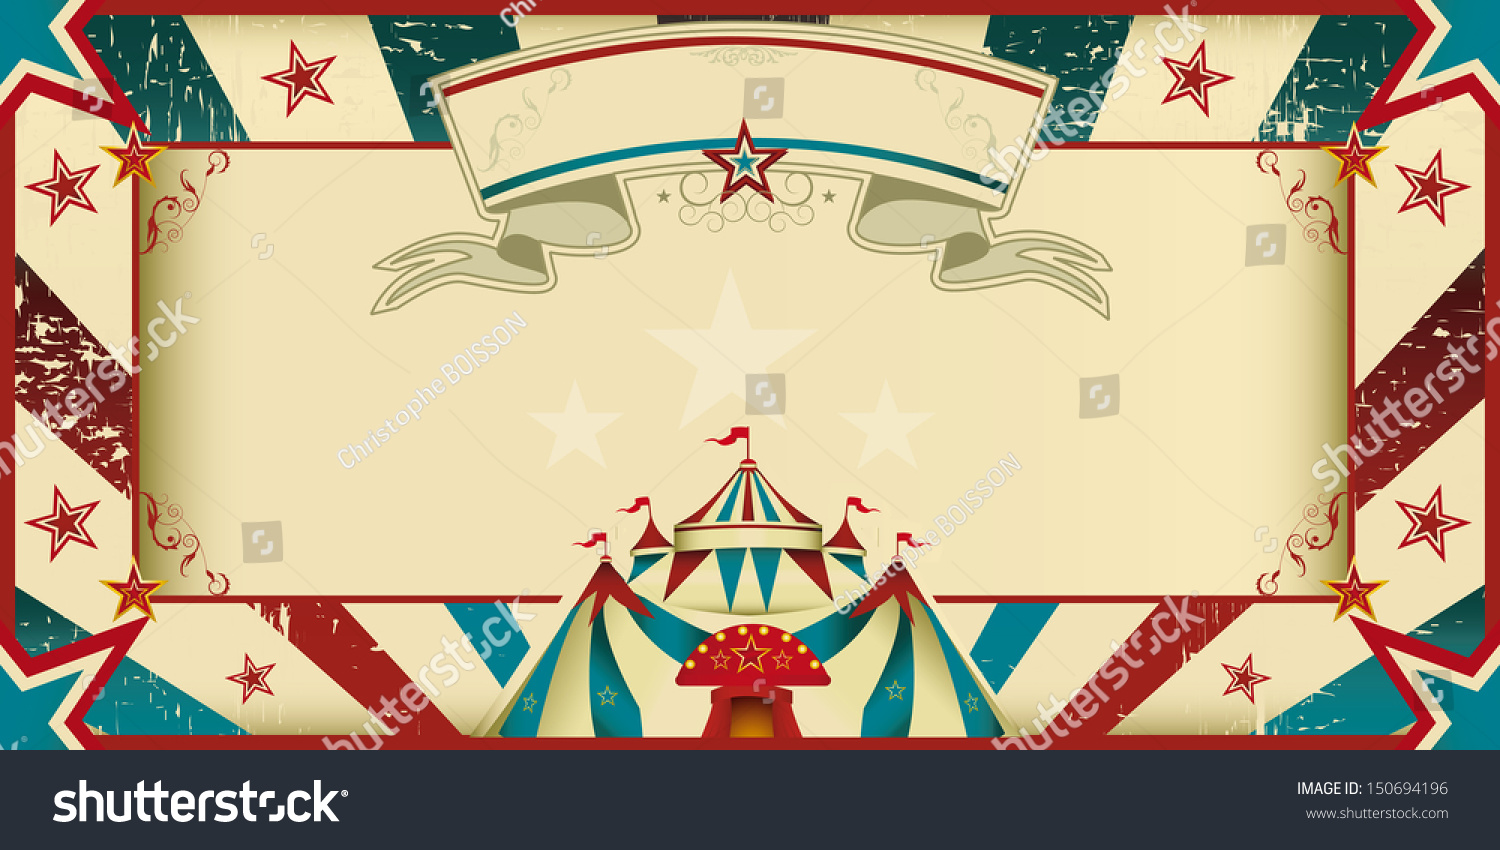 Dirty Circus Invitation Invitation Card Your Stock Vector ...